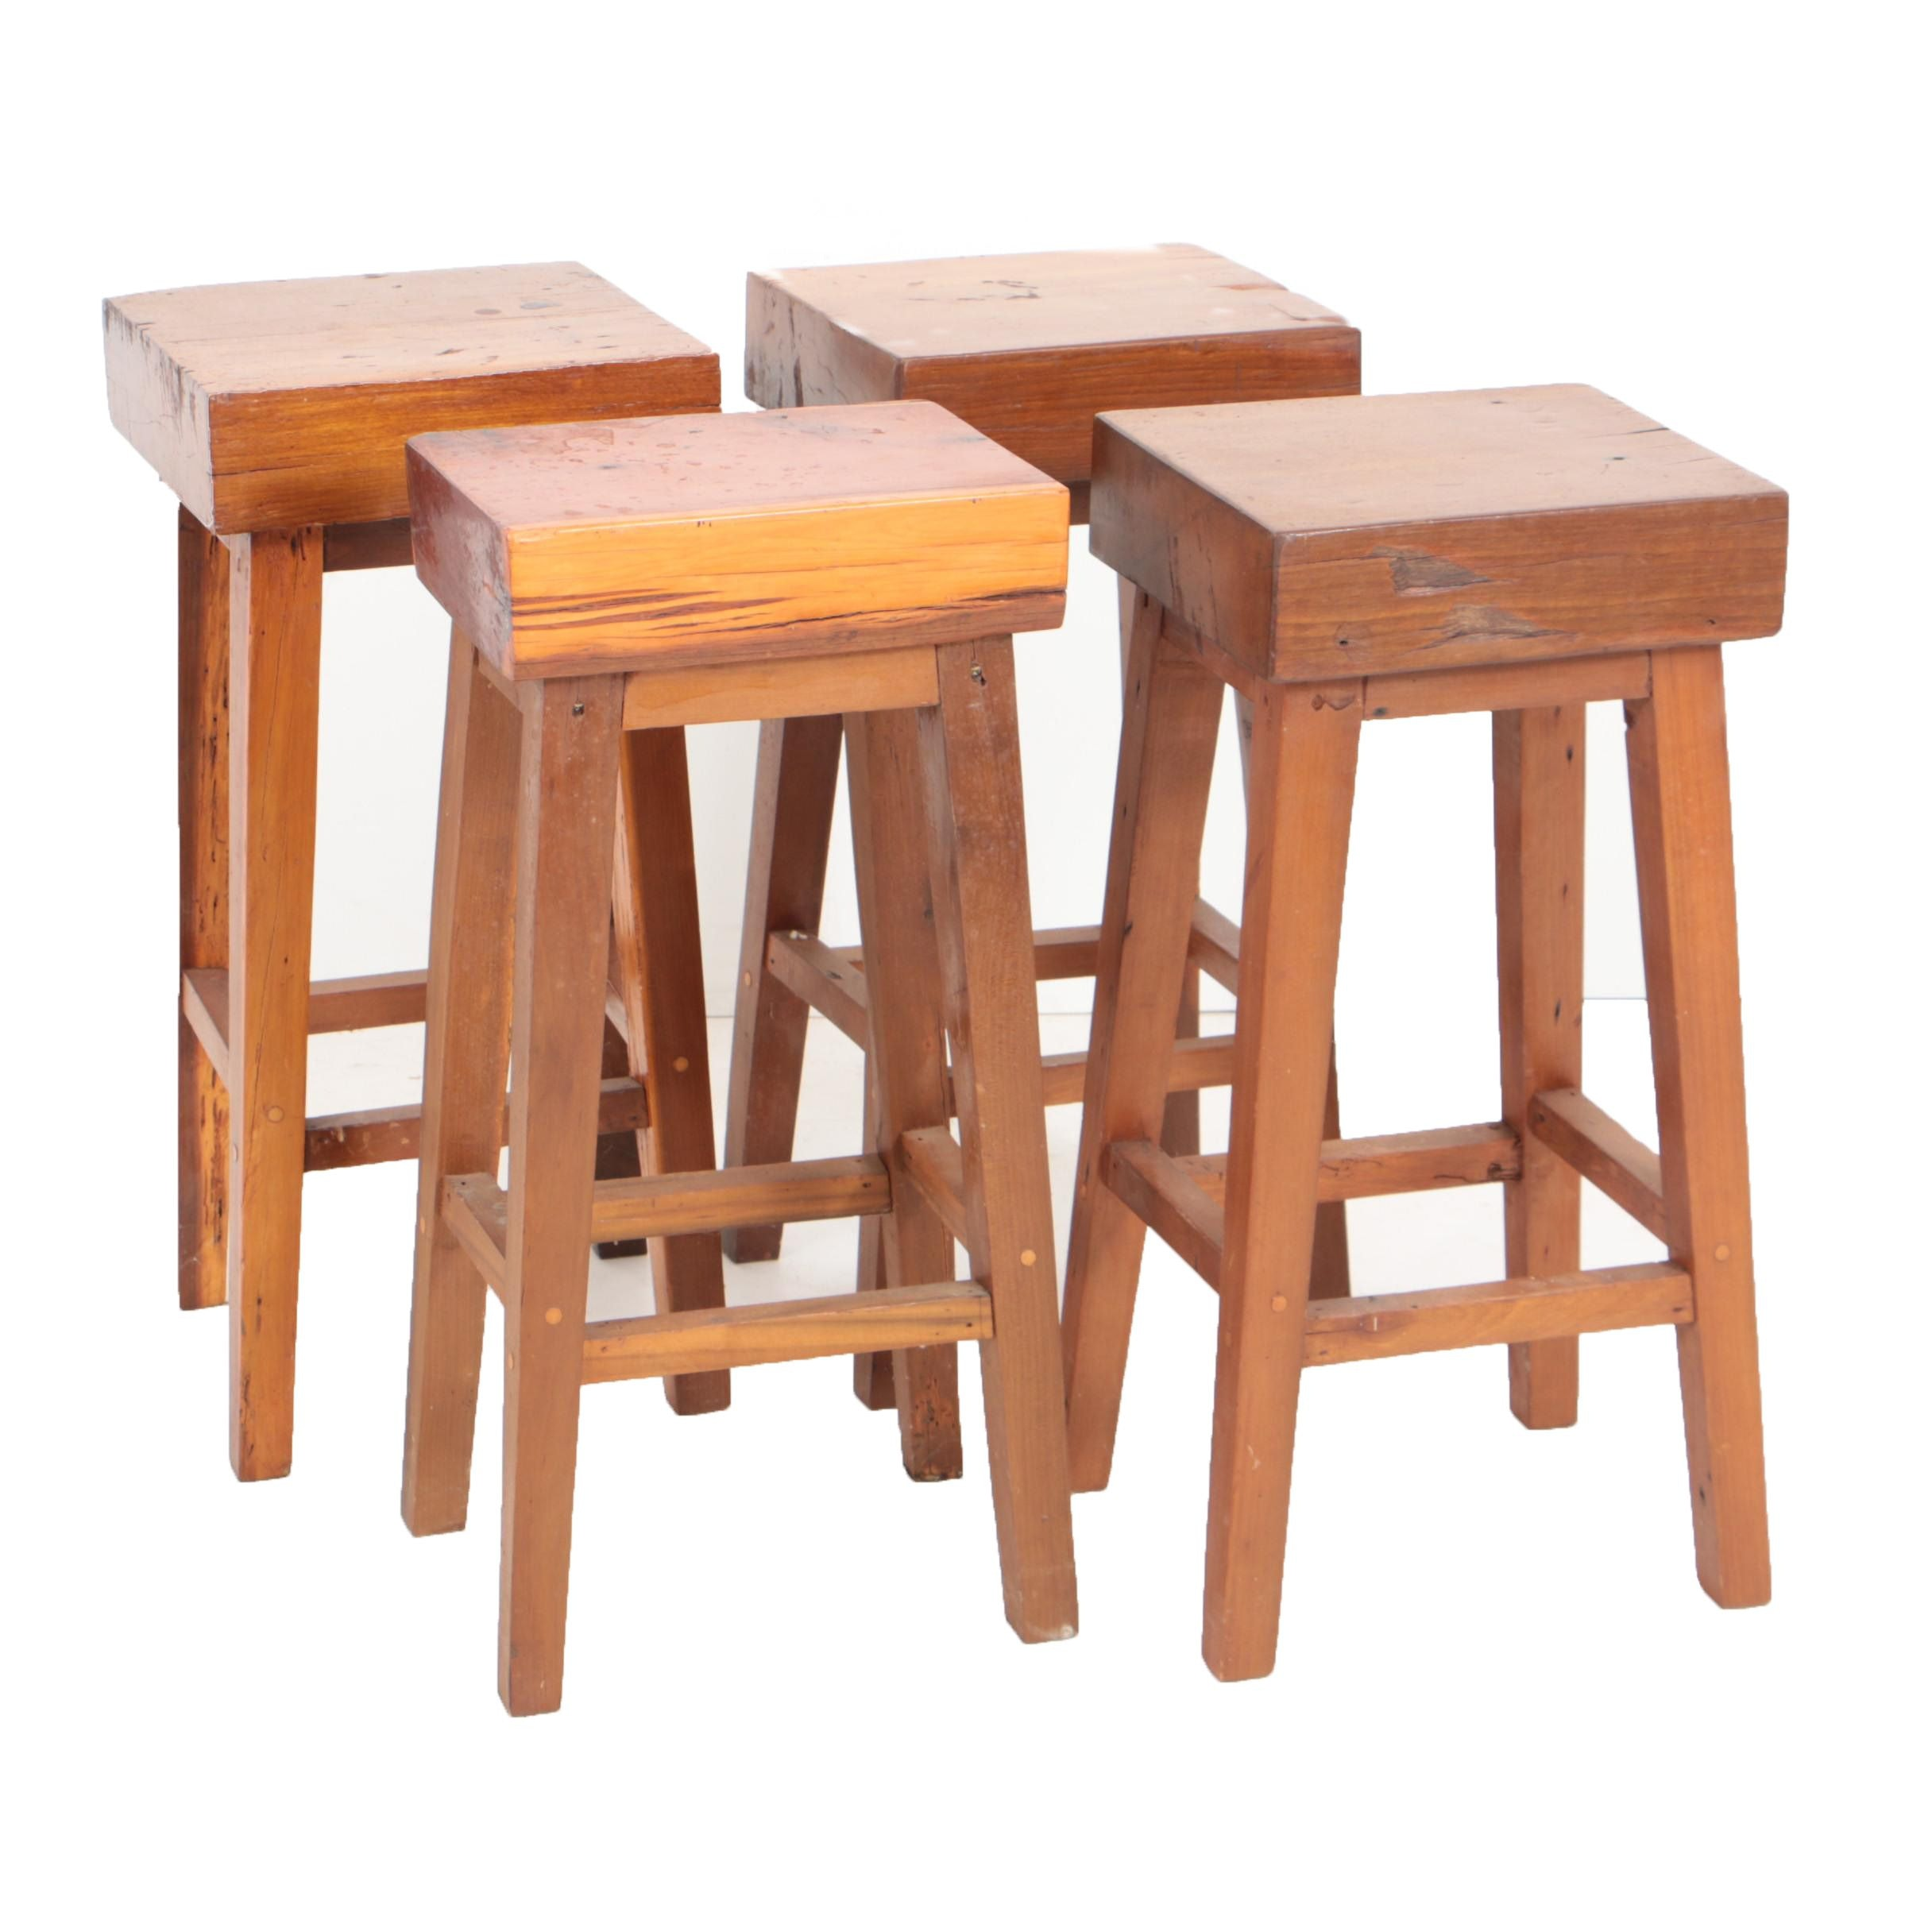 Vintage Cherry Butcher Block Style Stools